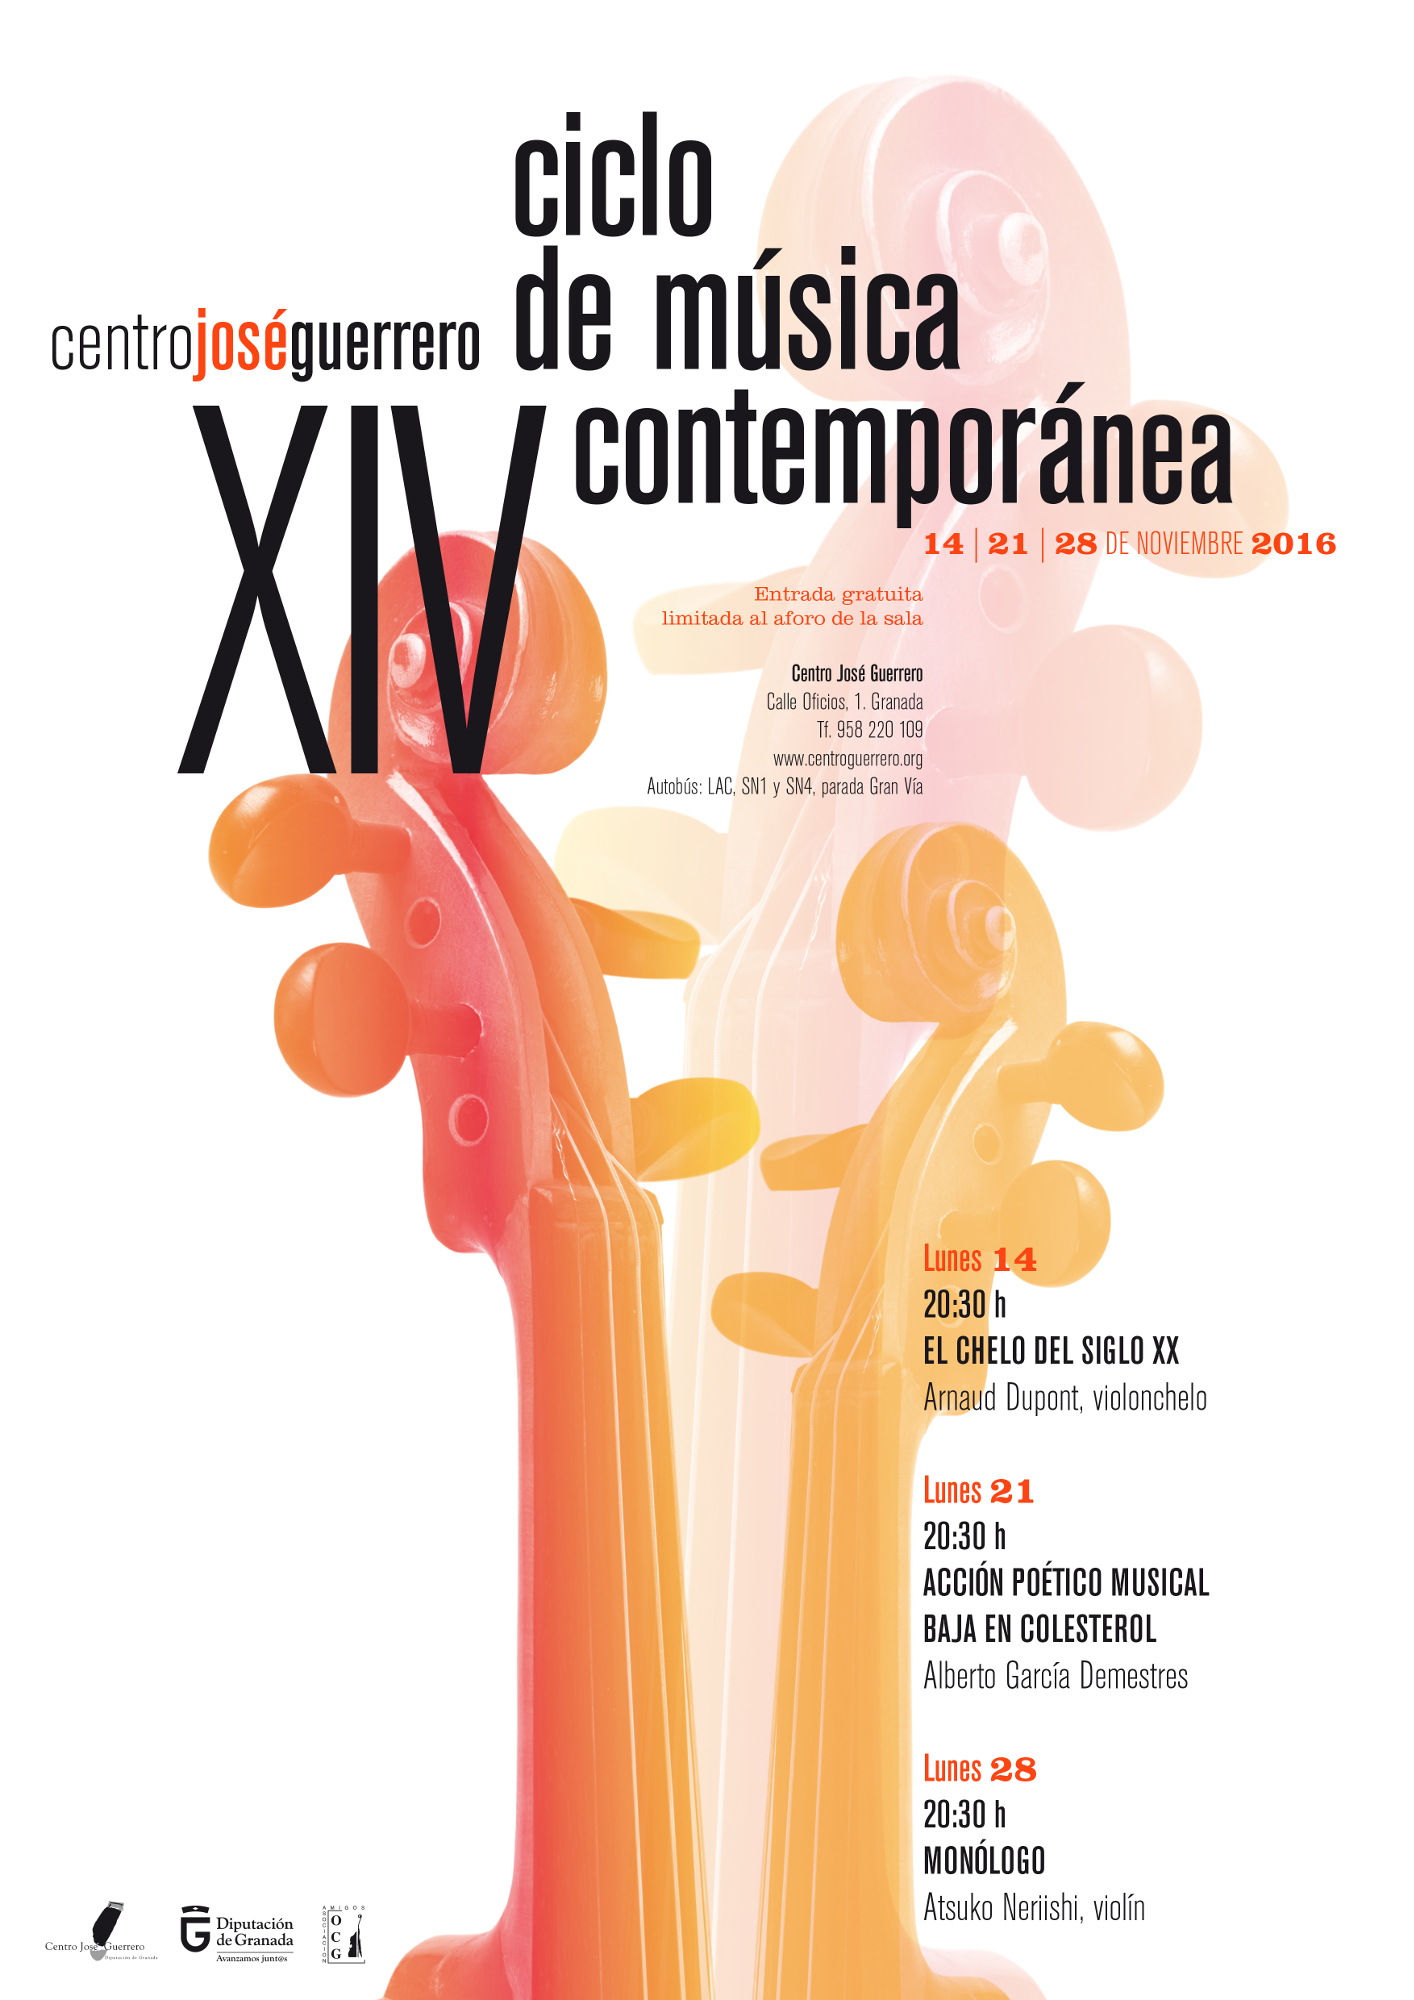 xiv-ciclo-de-musica-contemporanea_cartel_red